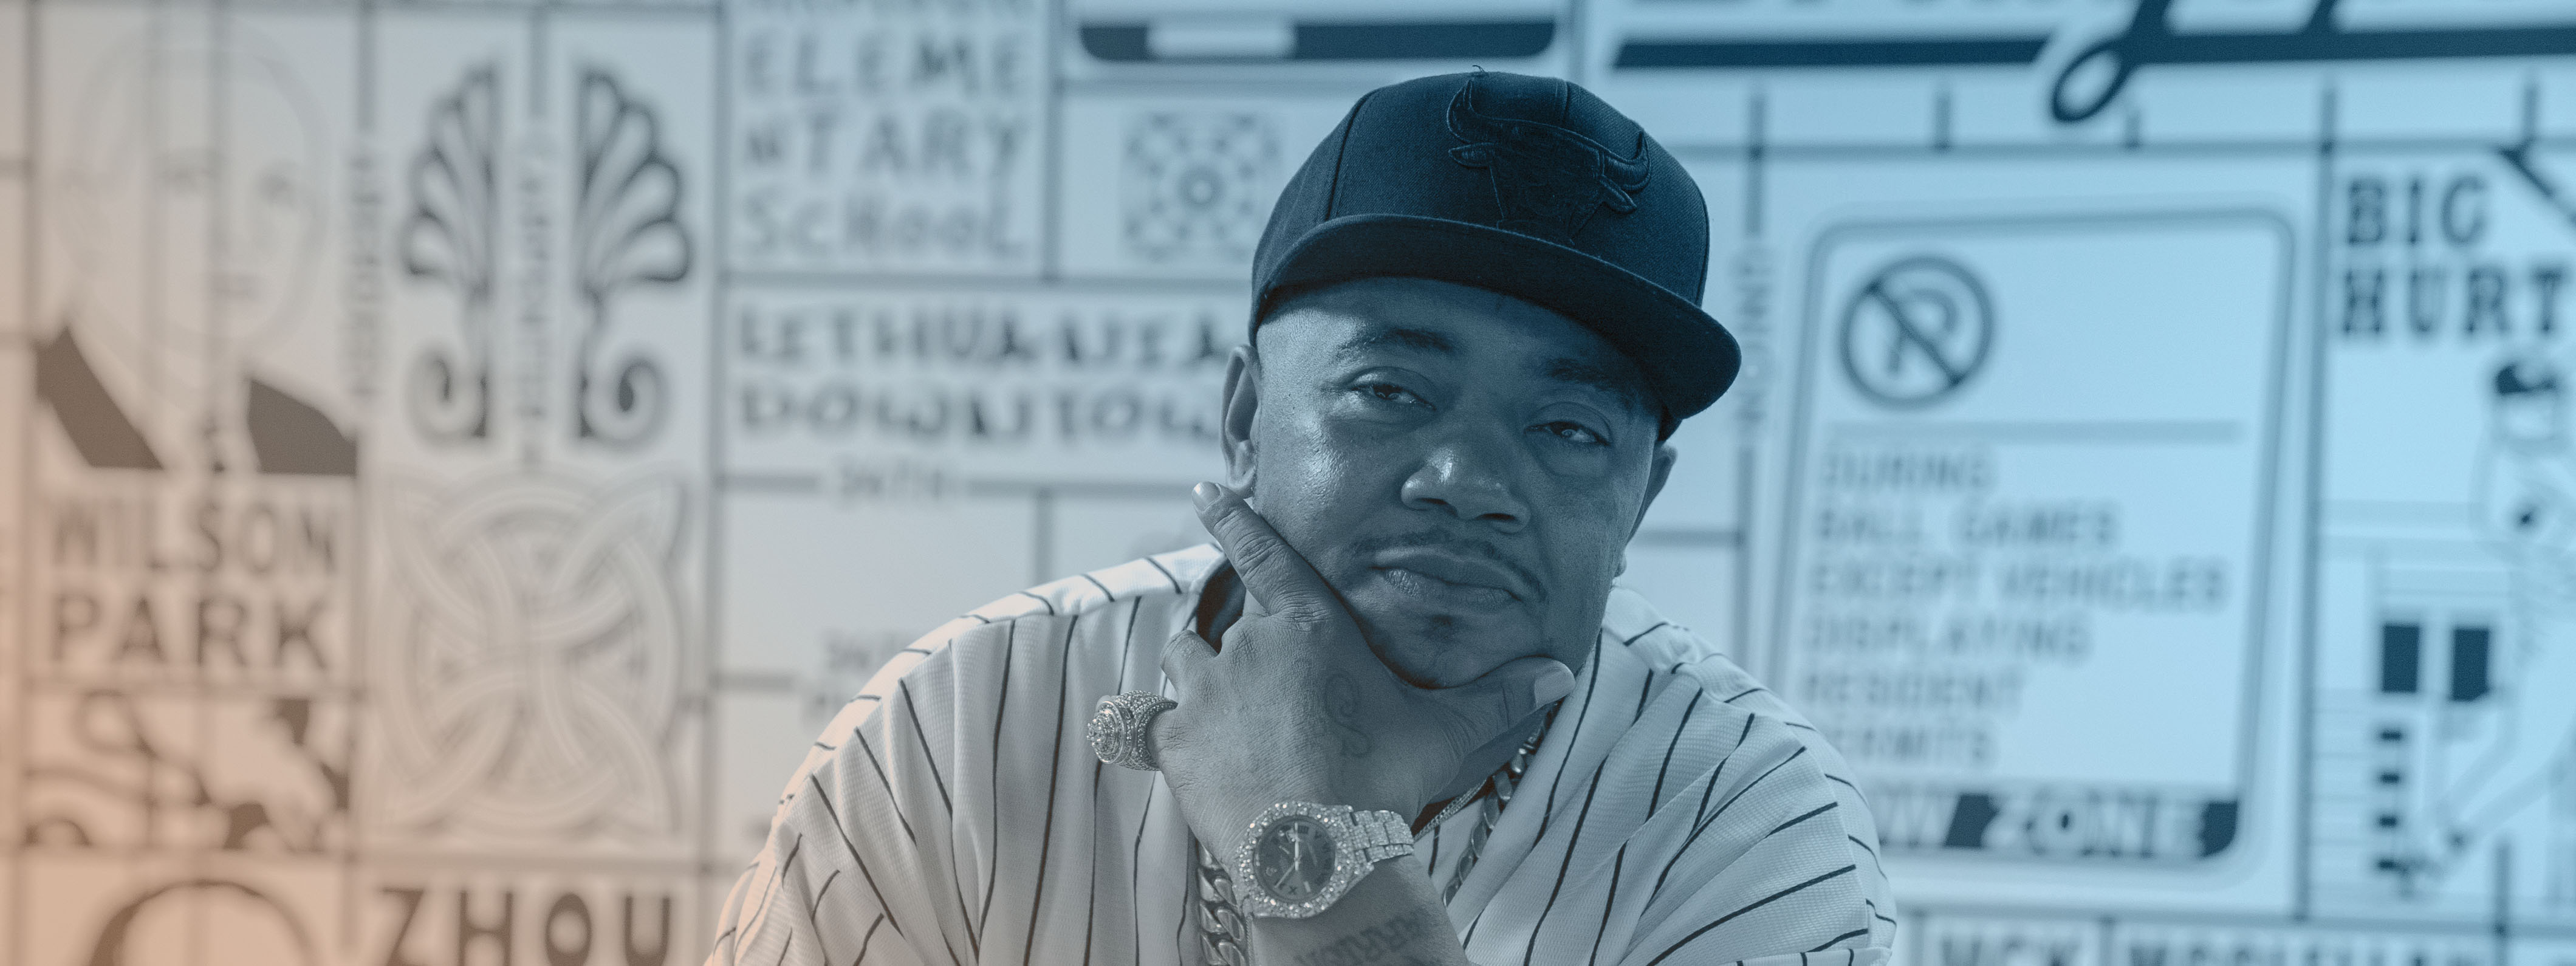 Out Today by The Orchard: Twista, Ingrid Michaelson & More